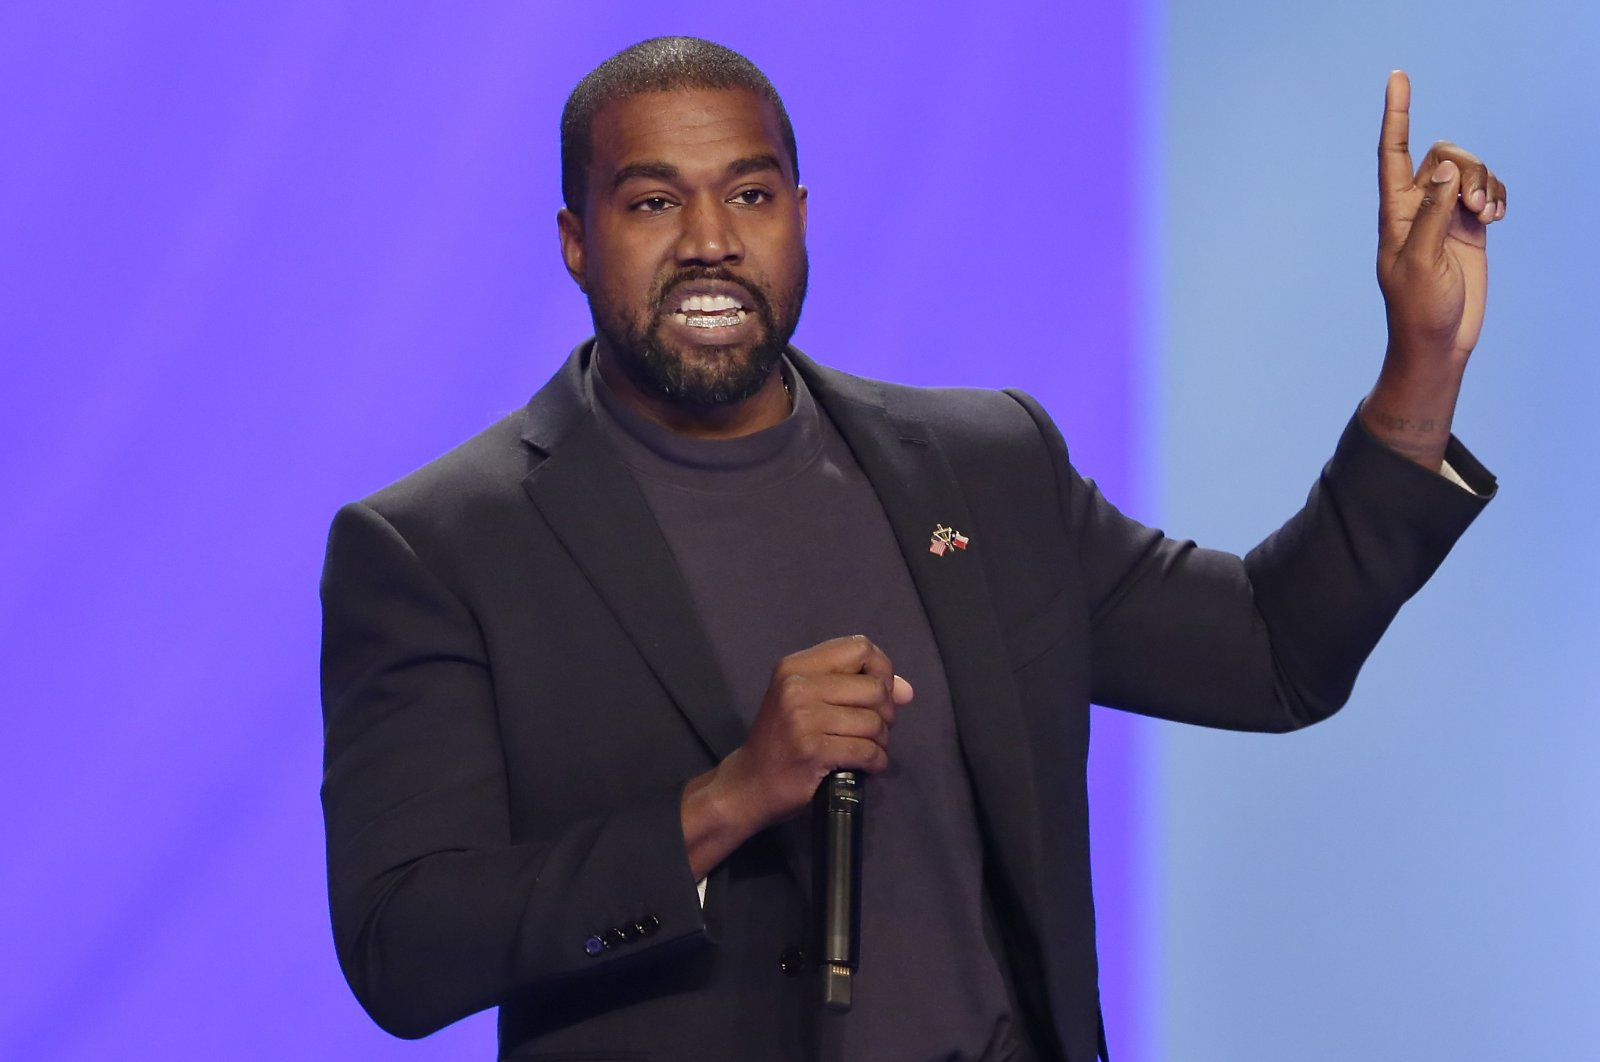 In this Nov. 17, 2019, file photo, Kanye West answers questions during a service at Lakewood Church, in Houston, Texas. (AP Photo)